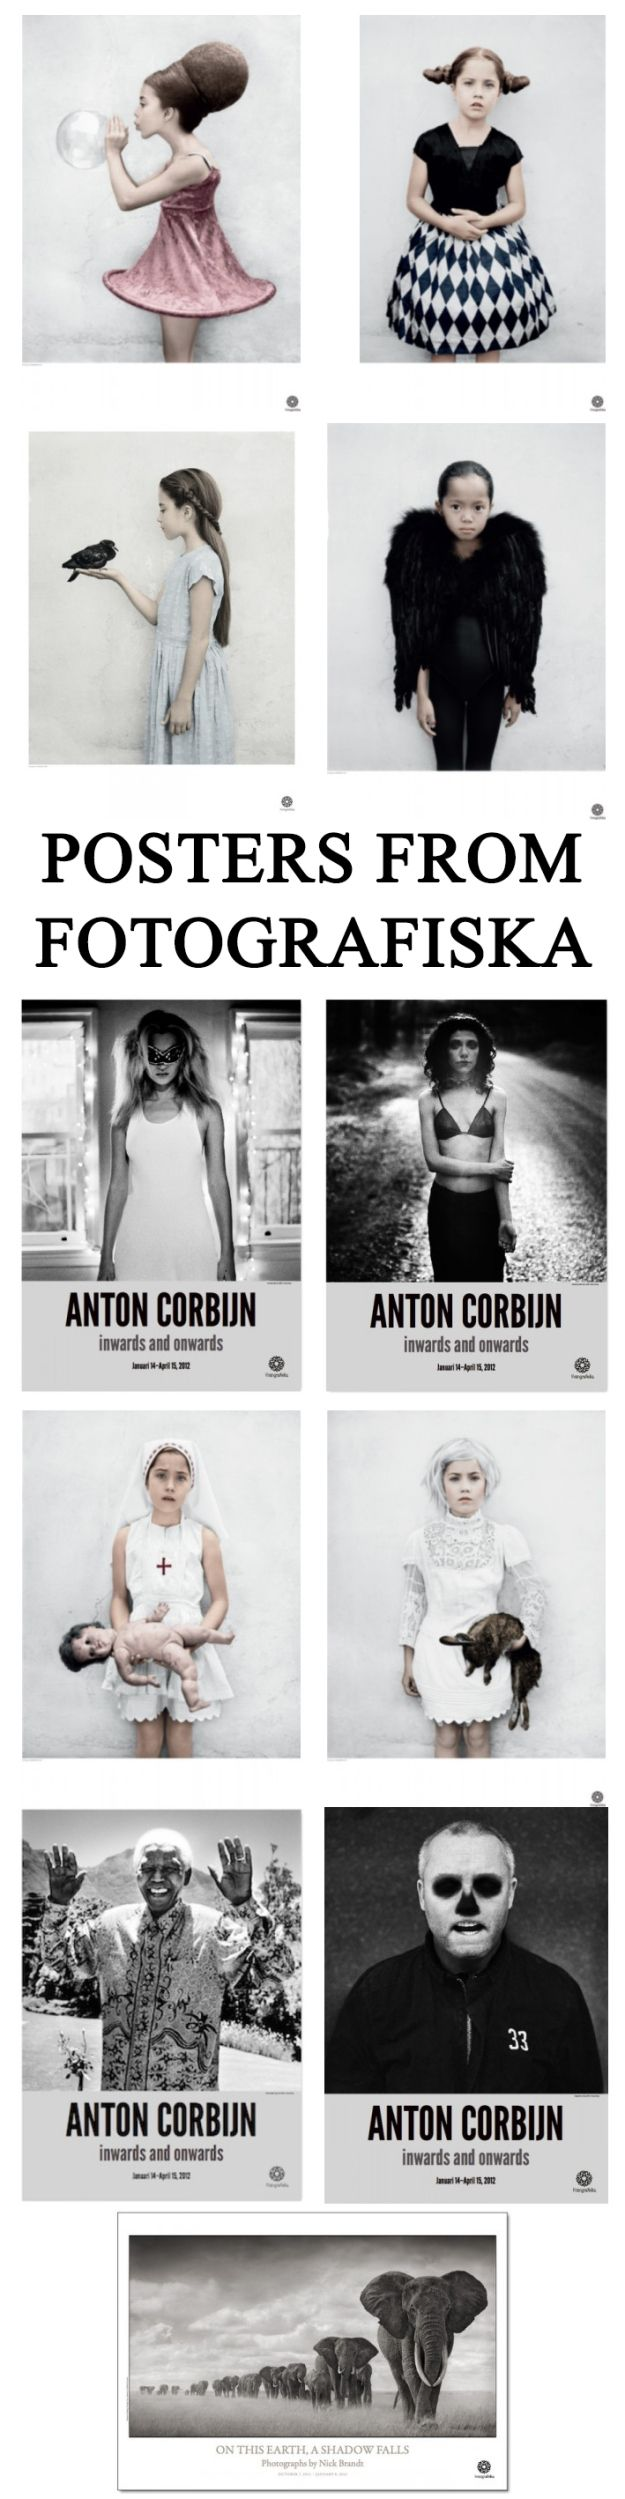 Pretty posters from Fotografiska on Nordicperspective.com